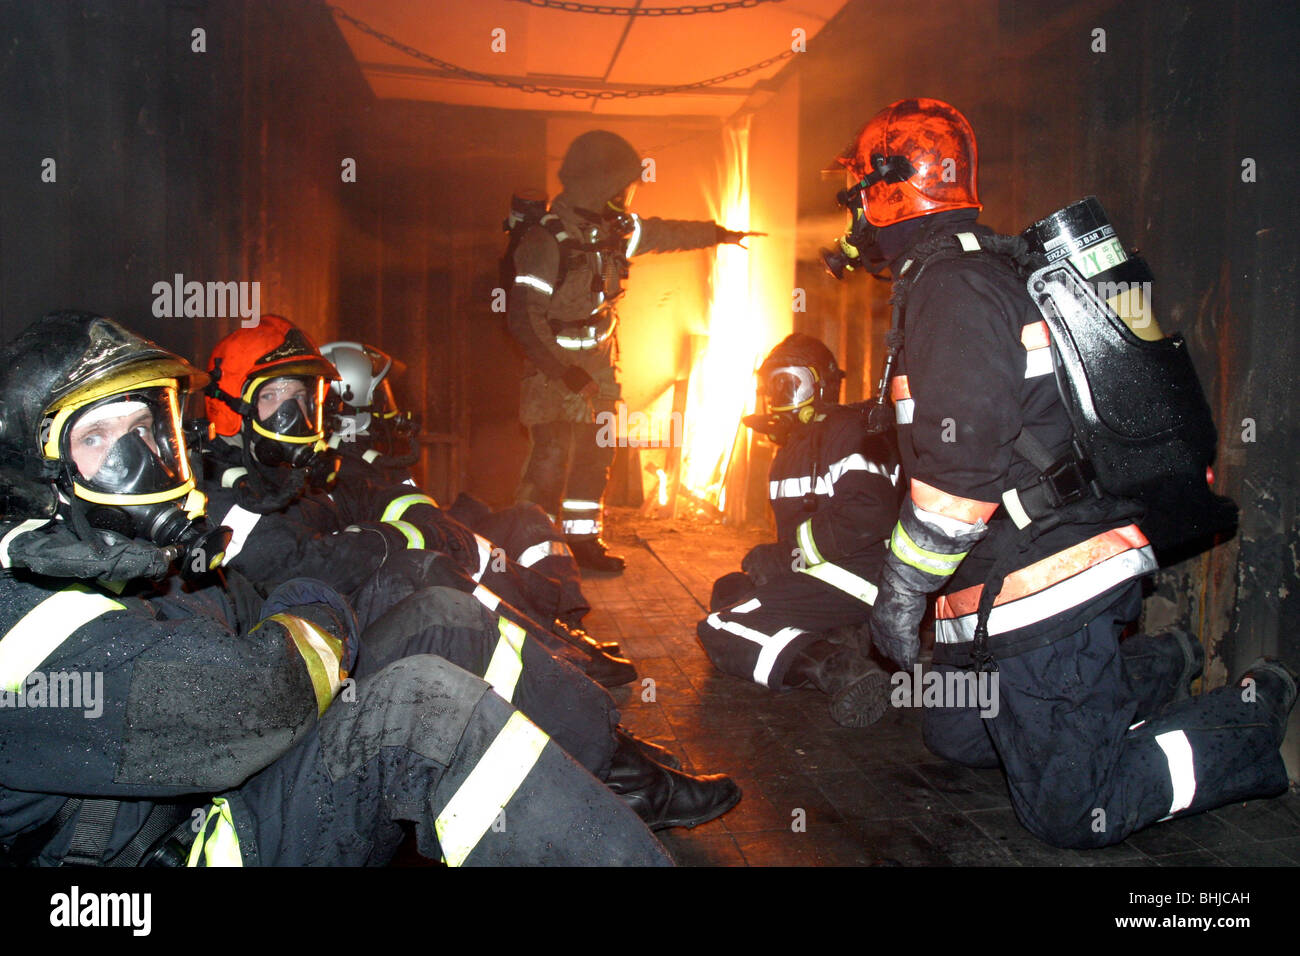 FLASH OVER IN A CONTAINER, DEPARTMENTAL FIREFIGHTERS SCHOOL OF THE ESSONNE (91), FRANCE Stock Photo